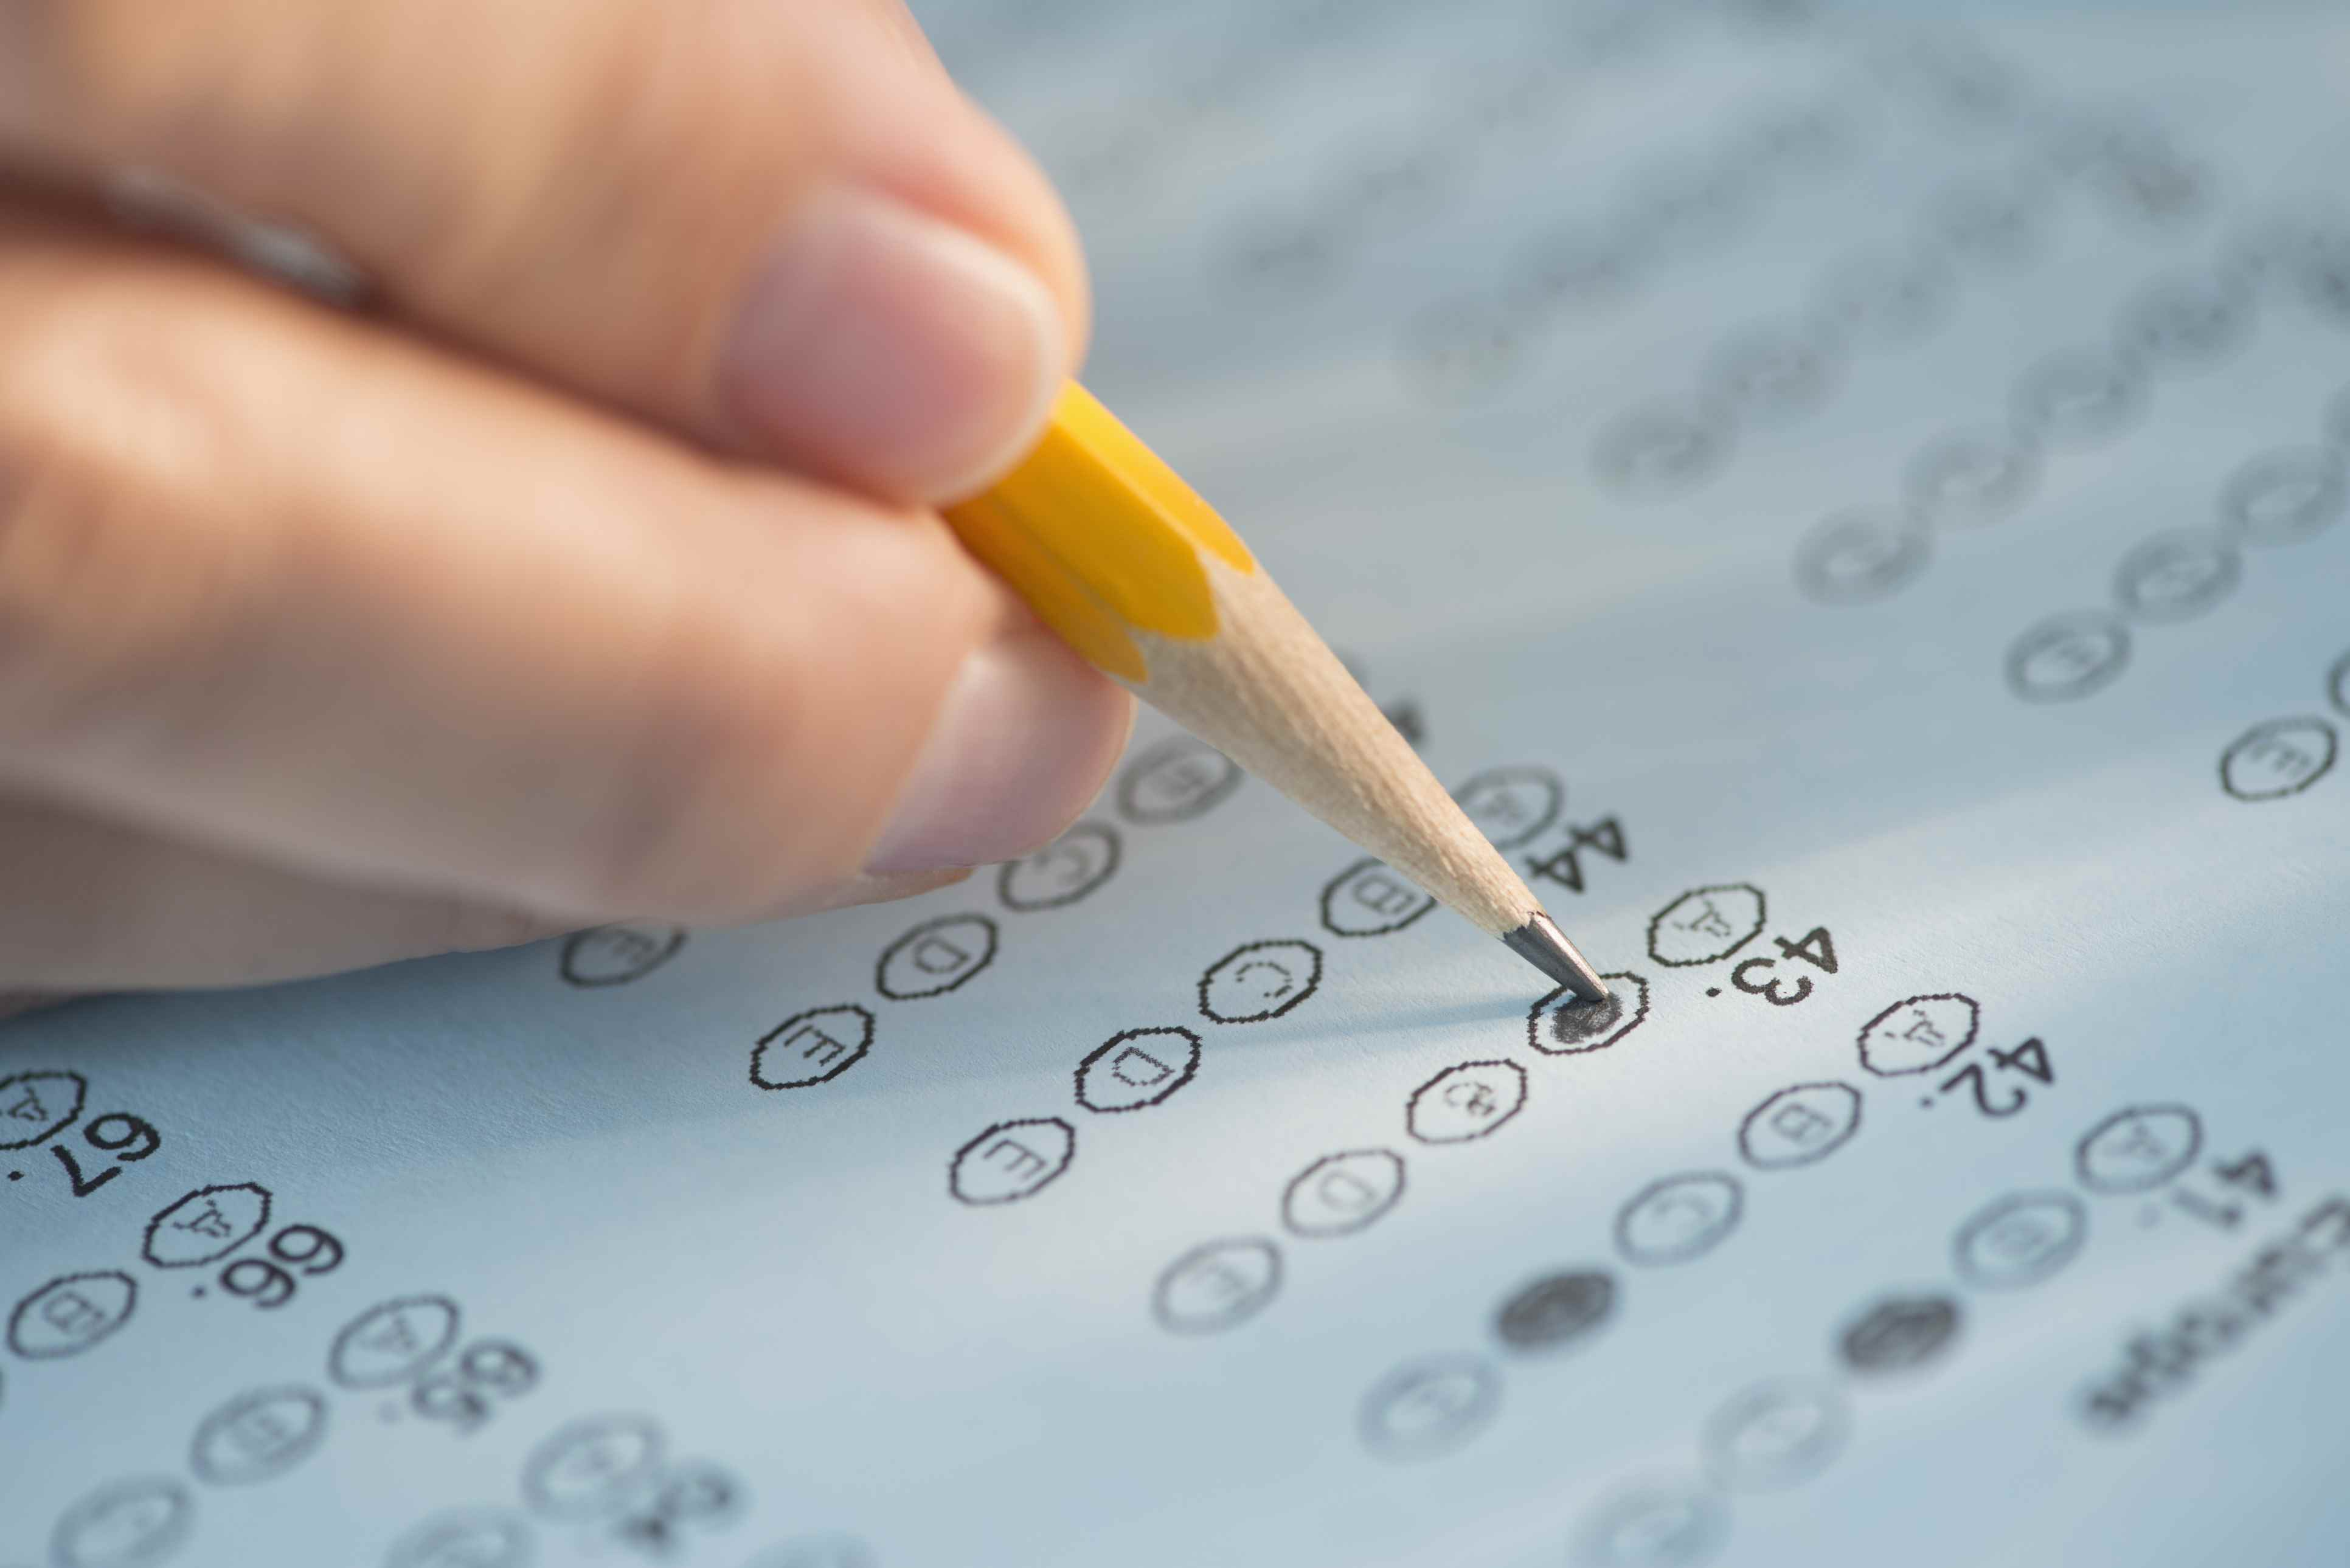 Knowledge exam for the FAA